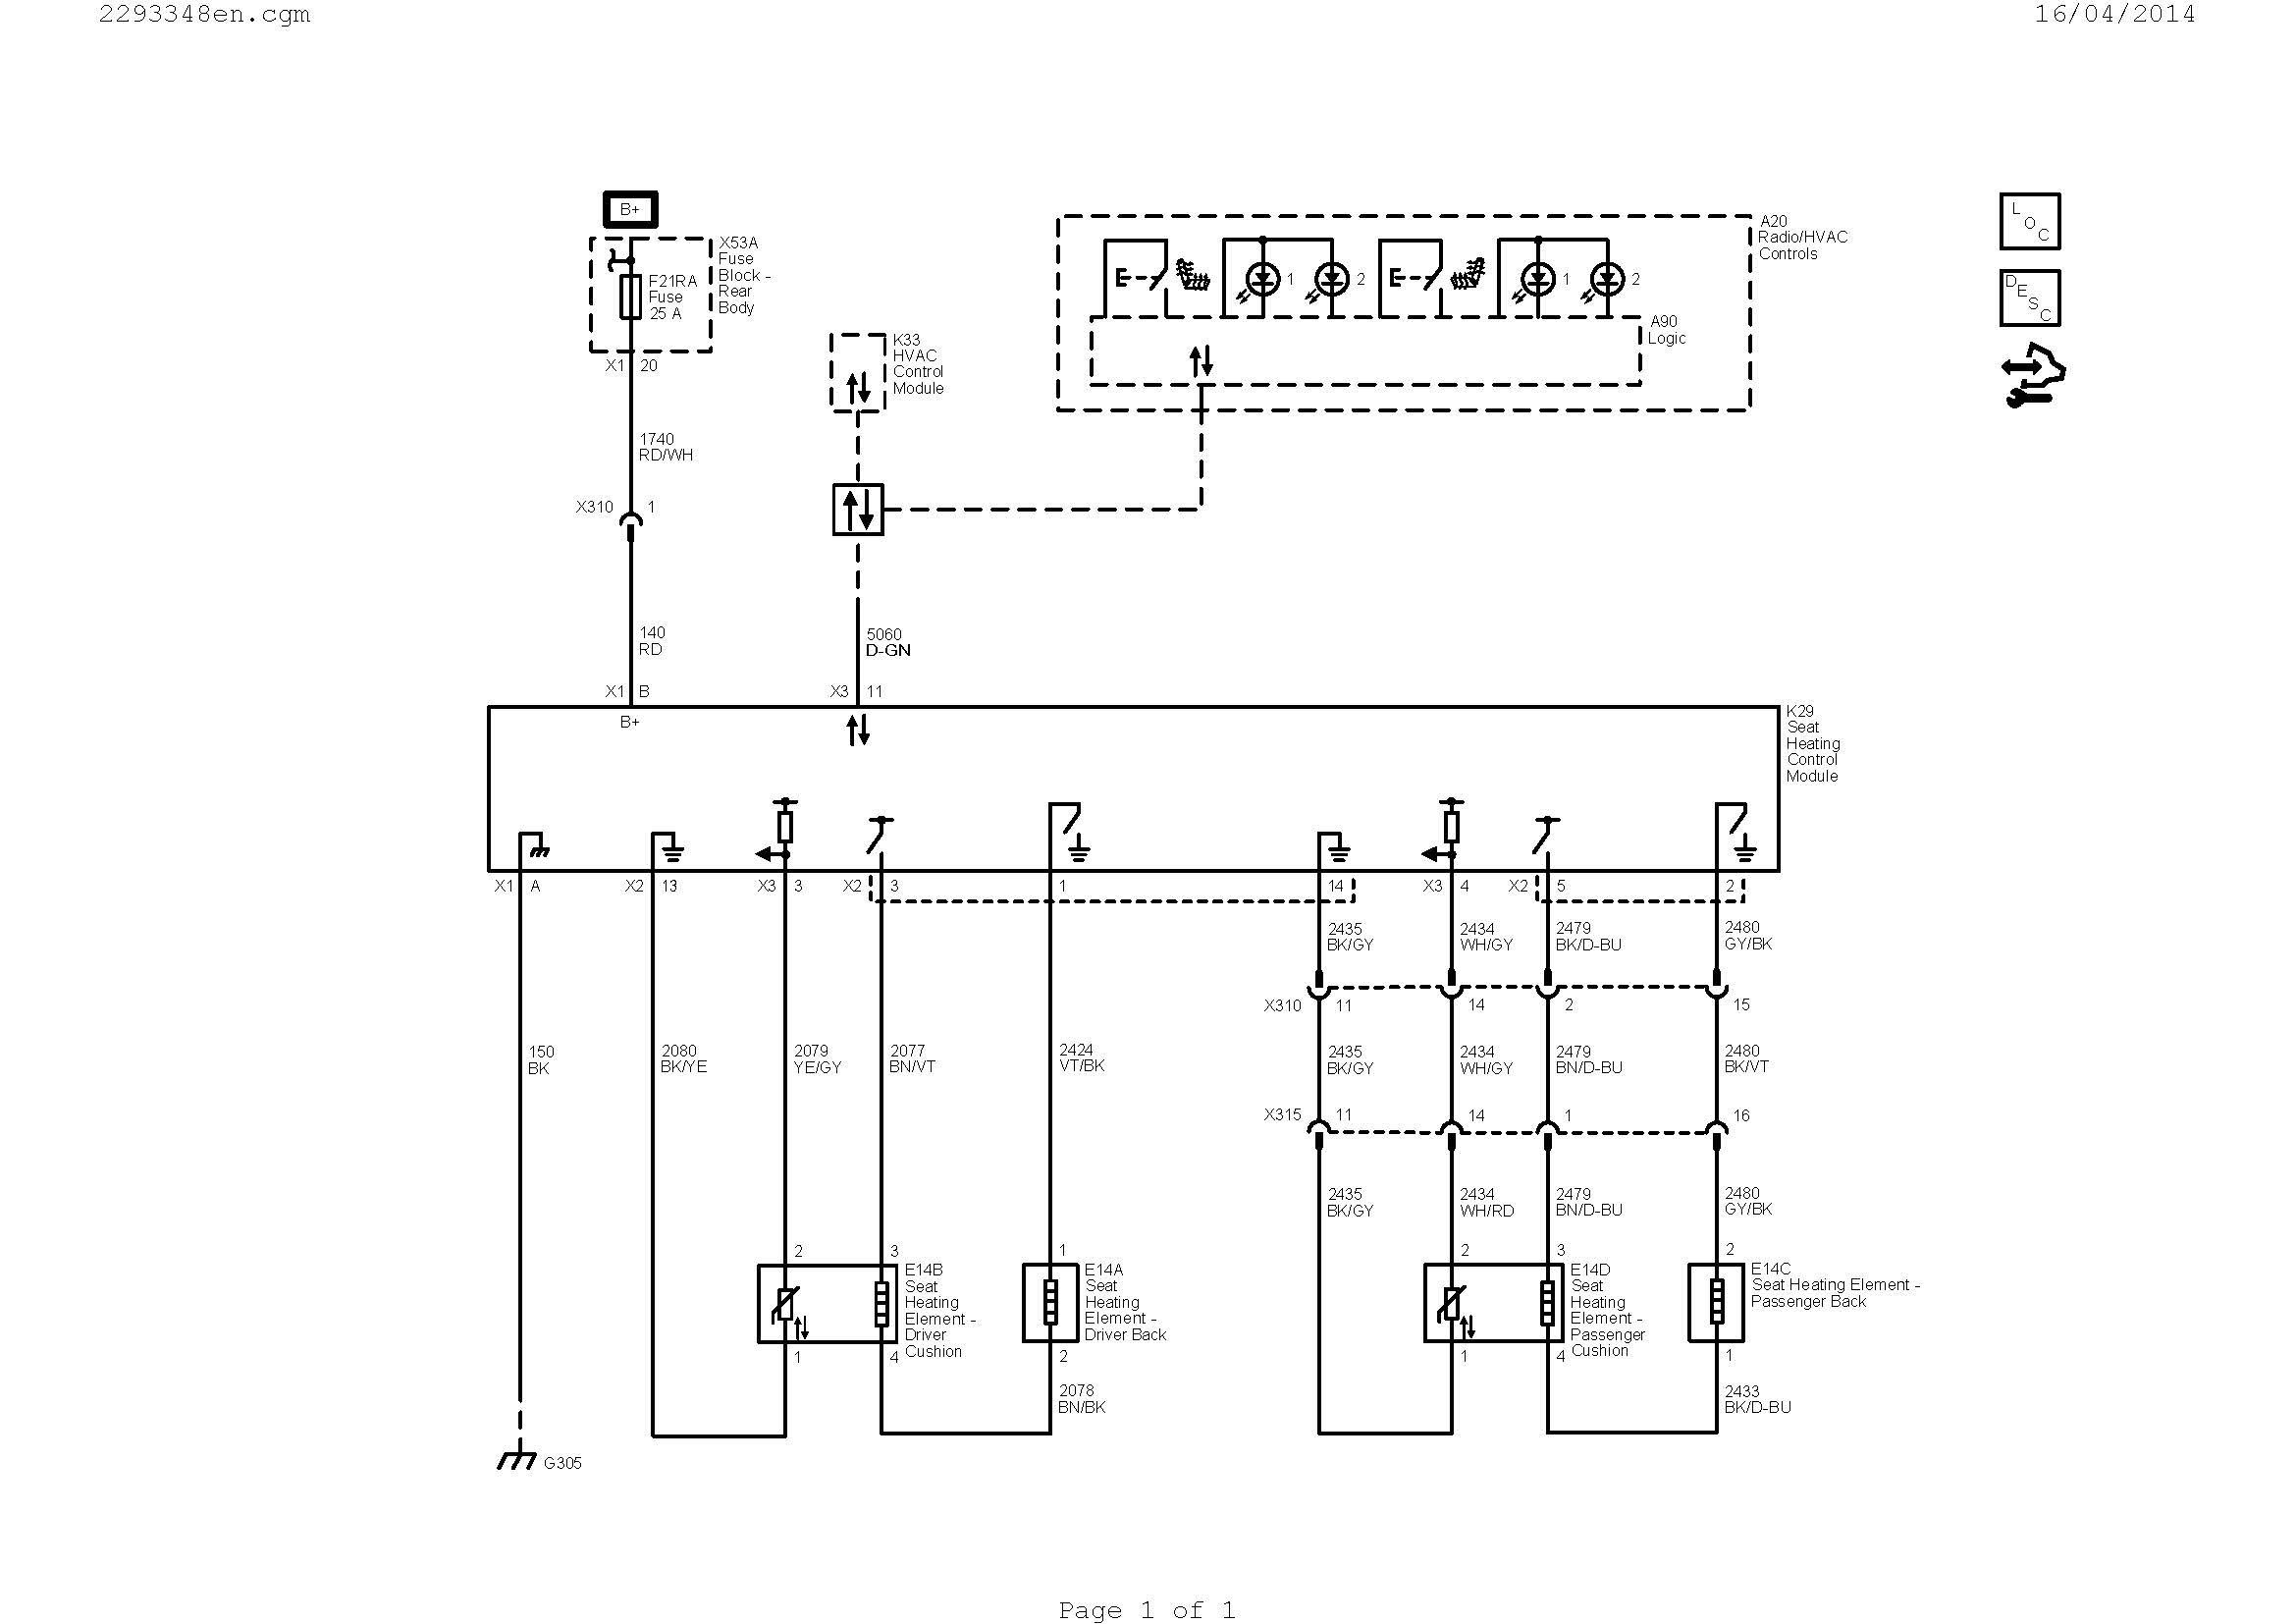 boiler wiring diagram Download-boiler wiring diagram Collection Wiring A Ac Thermostat Diagram New Wiring Diagram Ac Valid Hvac 6-h